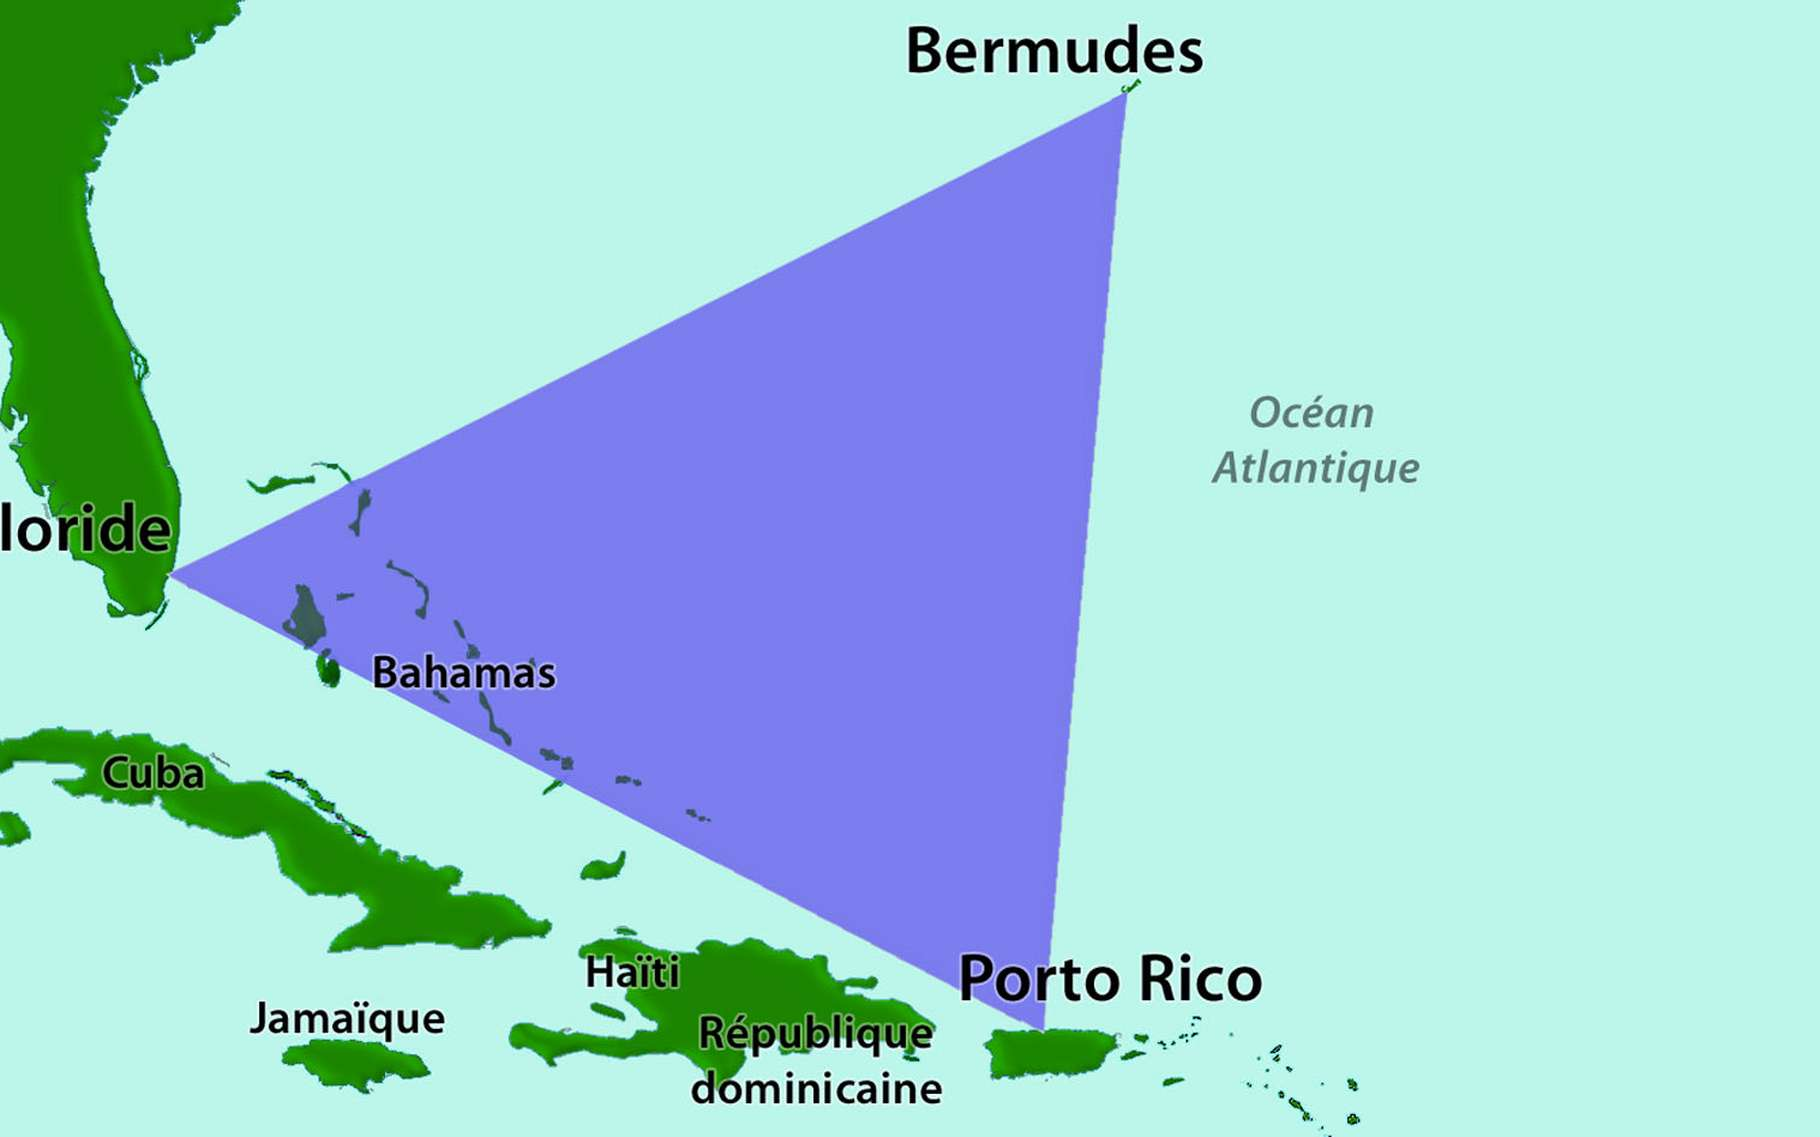 Le triangle des Bermudes. © DS003, Wikimedia commons, CC by-sa 3.0